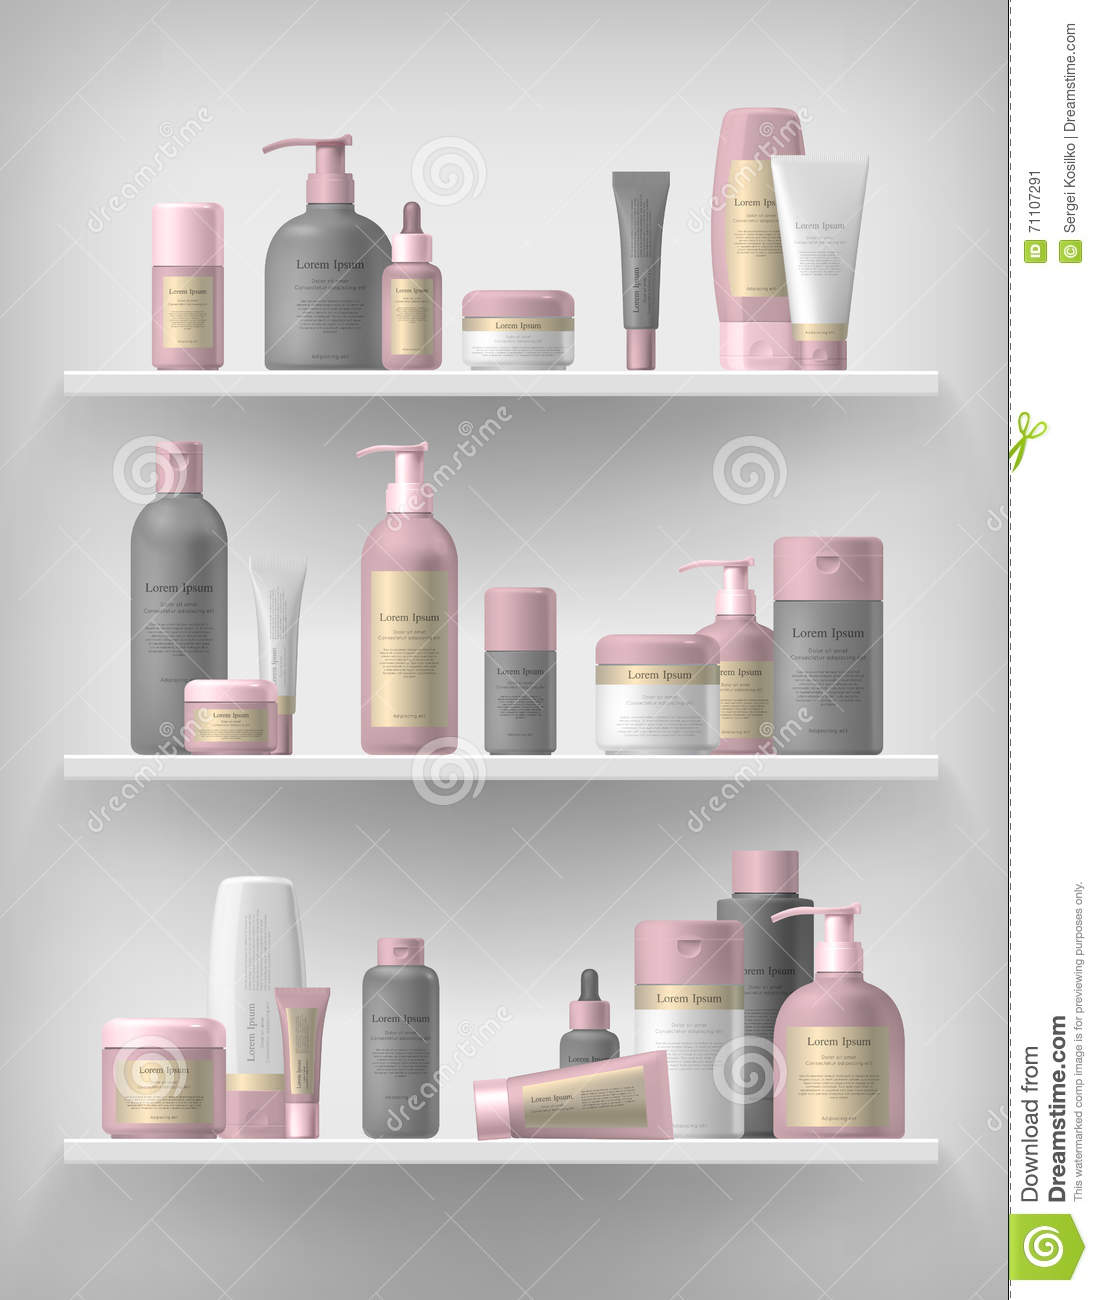 Cosmetic Brand Template. Realistic Bottle Set. Stock Vector ...